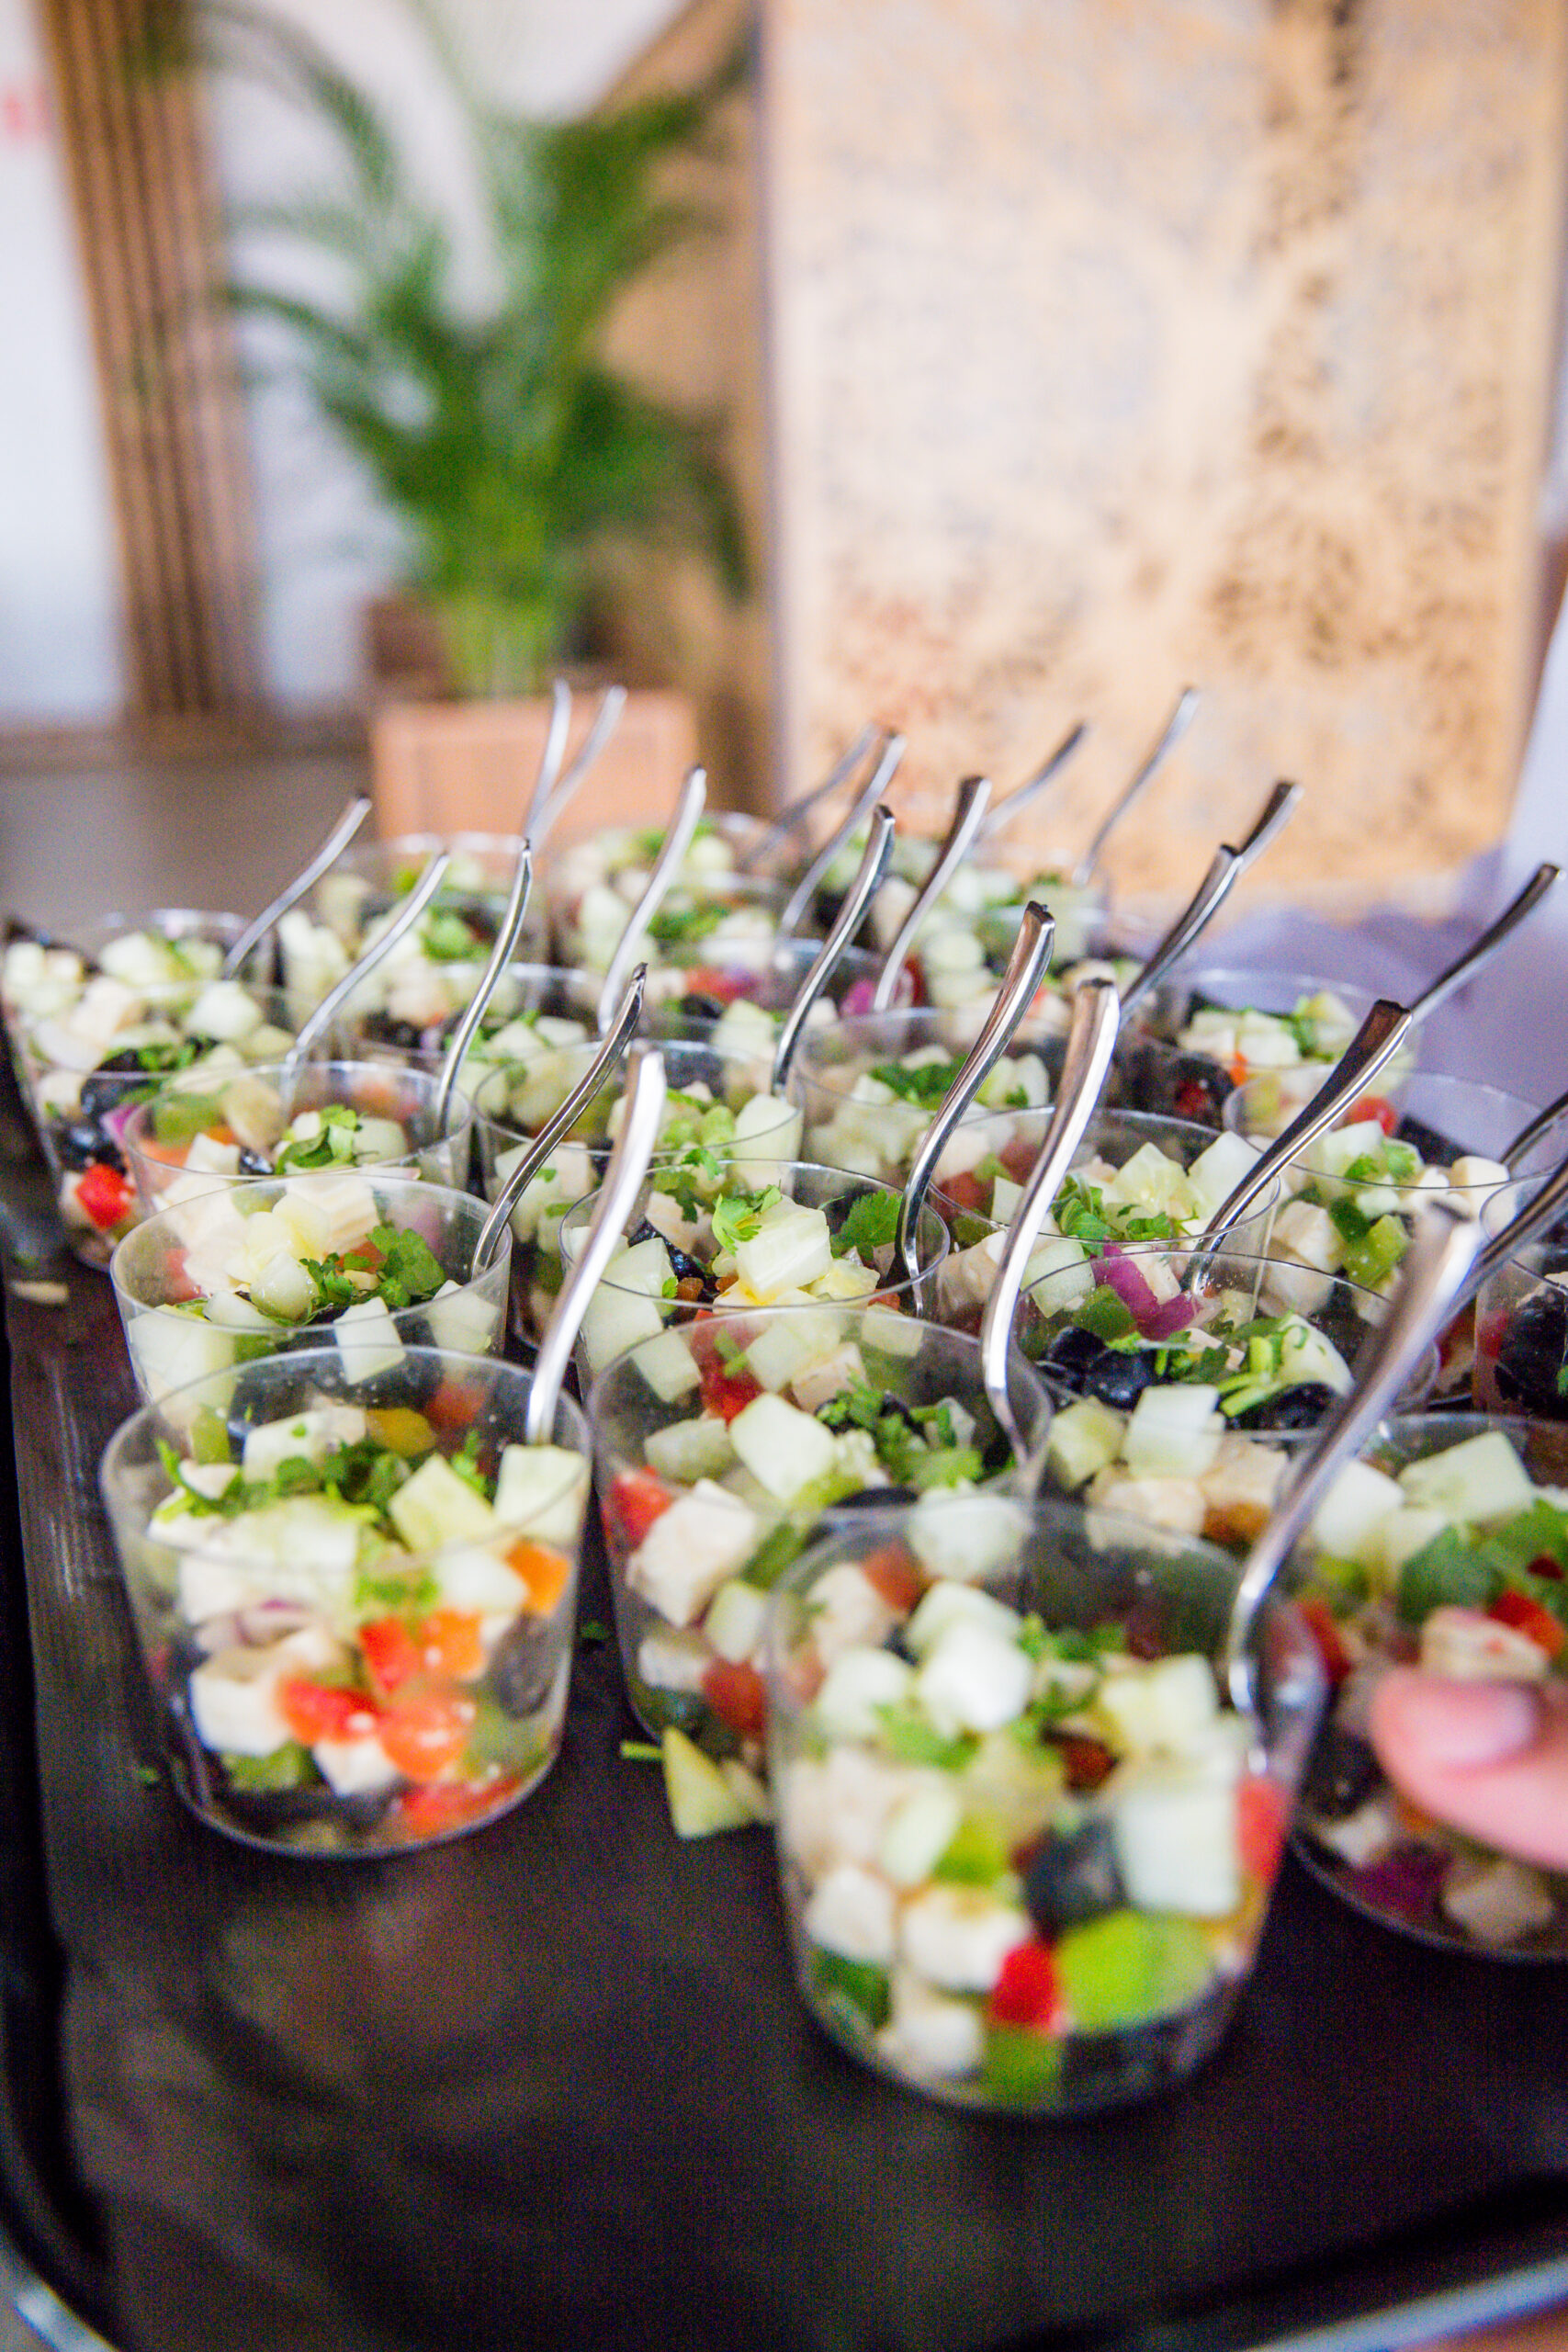 The delicious mozzarella and tomato salad served at the wedding breakfast - Rebecca Davidson Photography